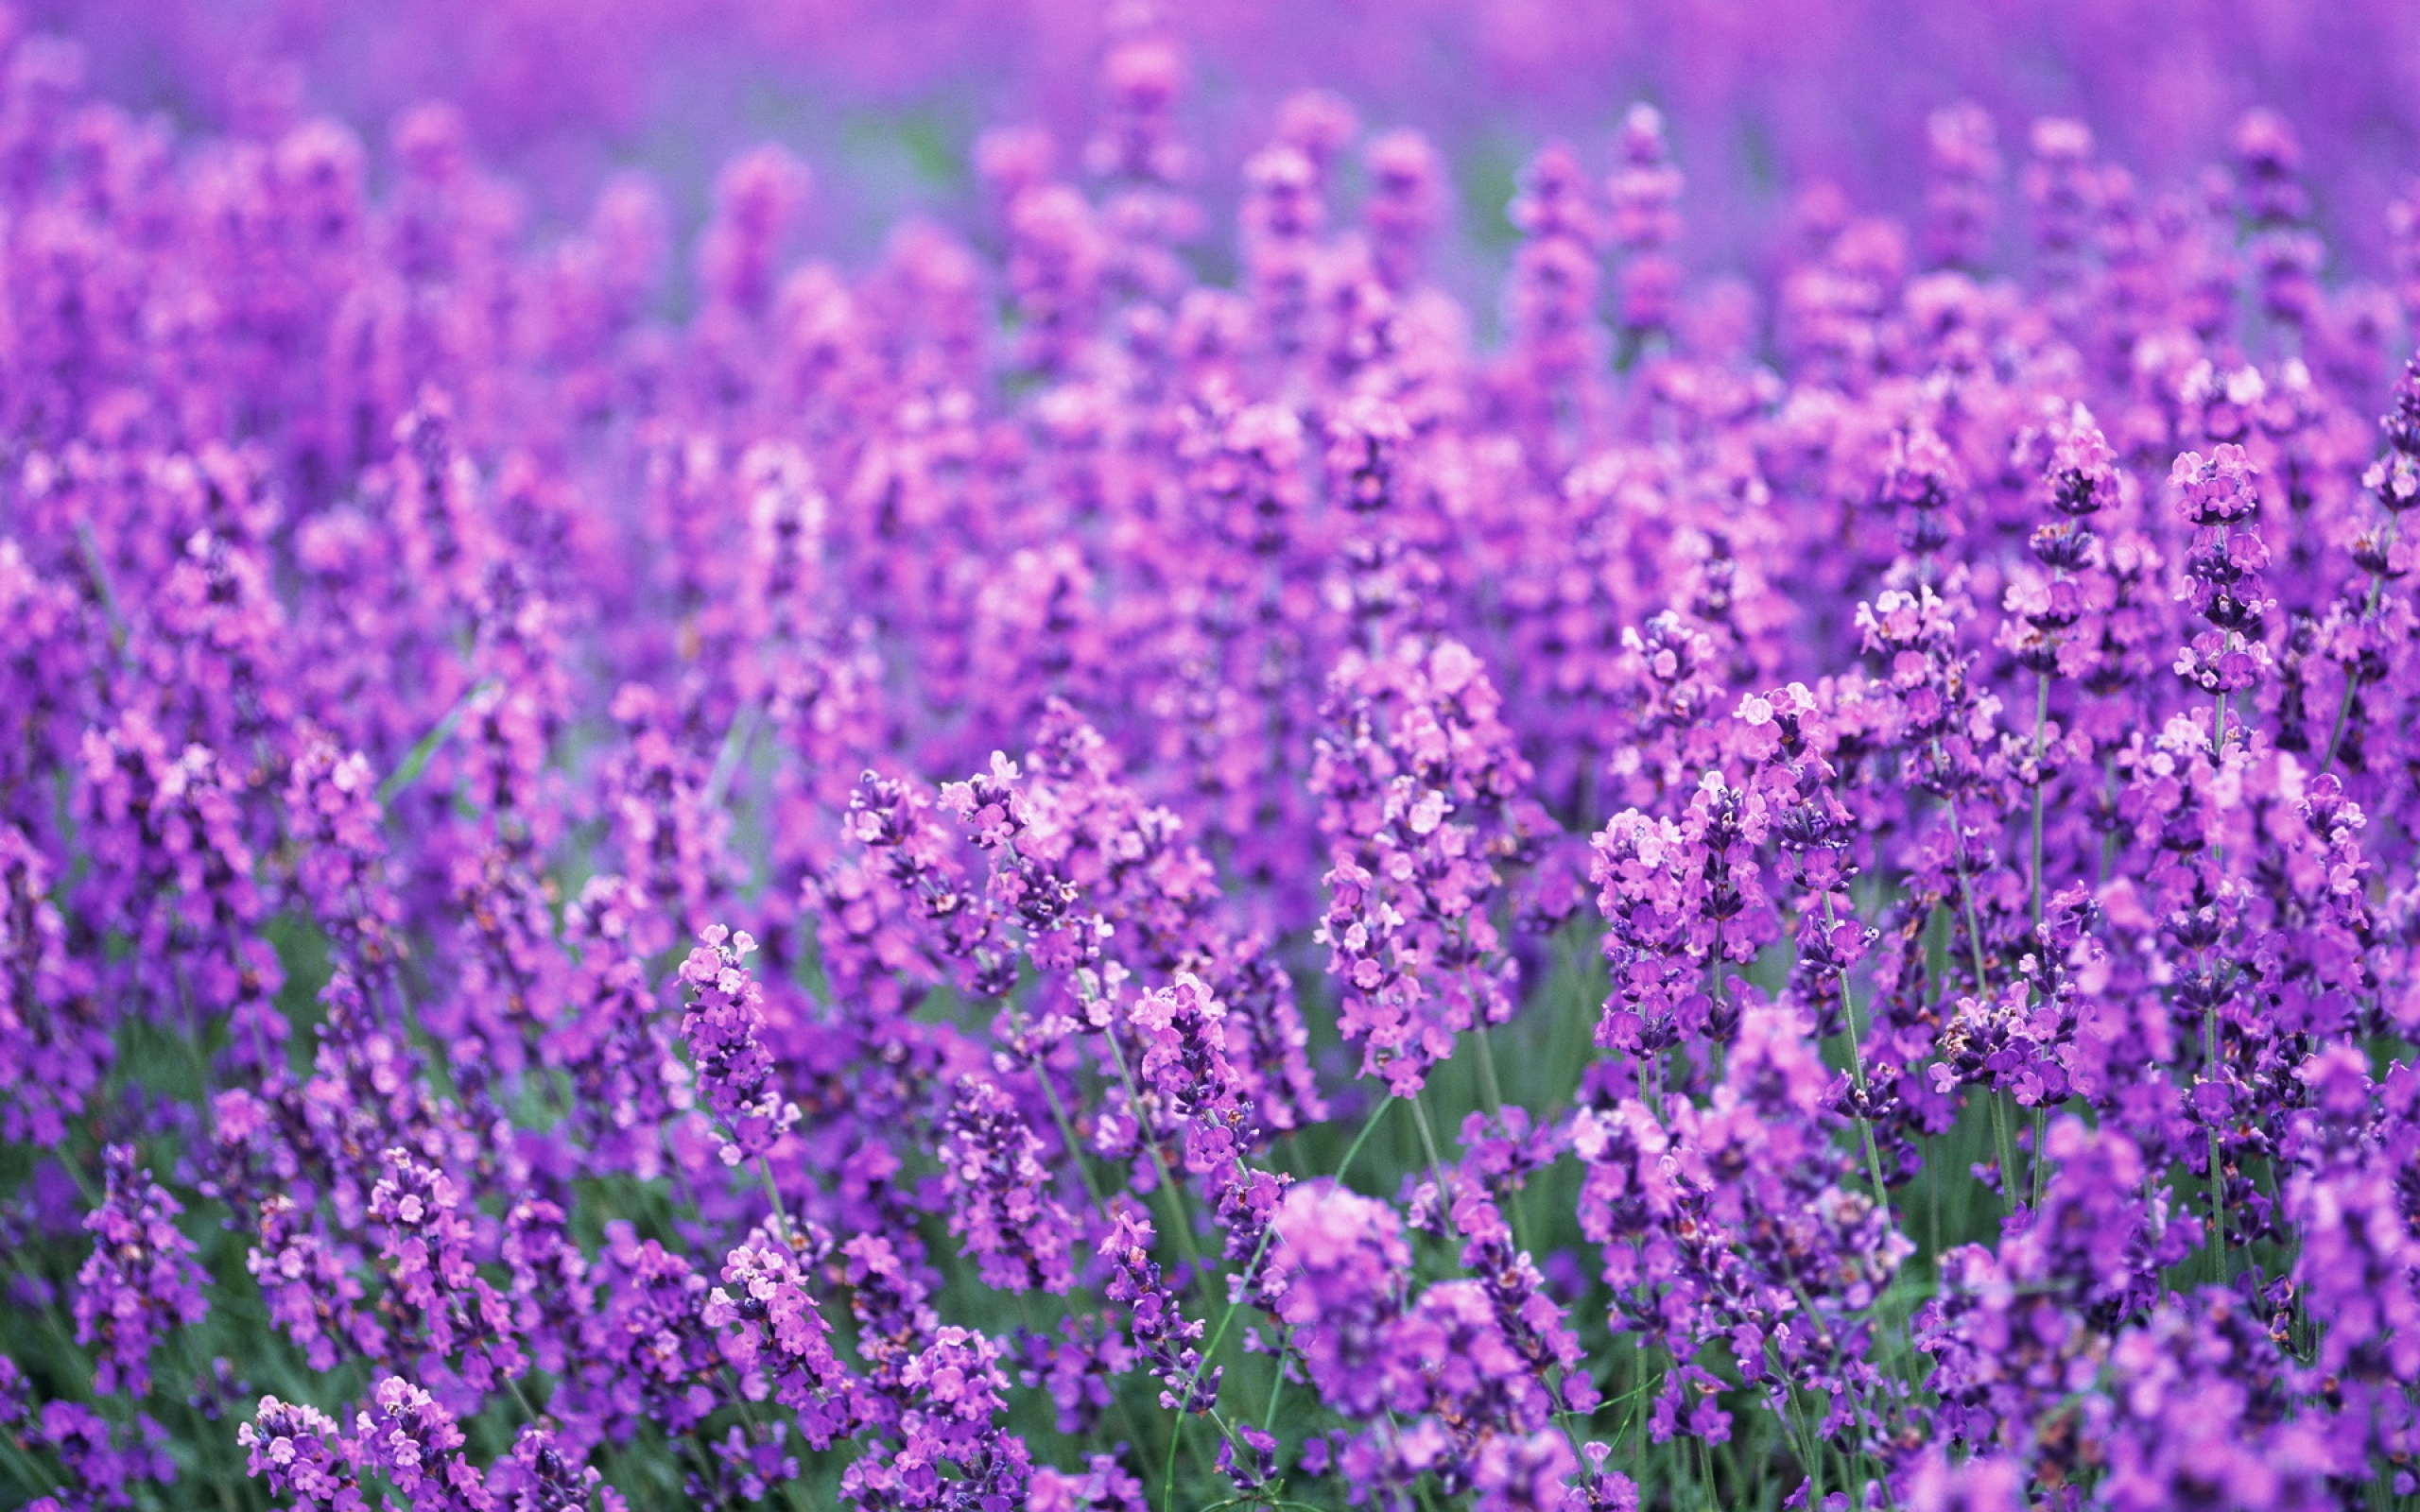 Lavender Flowers Desktop Background - Wallpaper, High ...